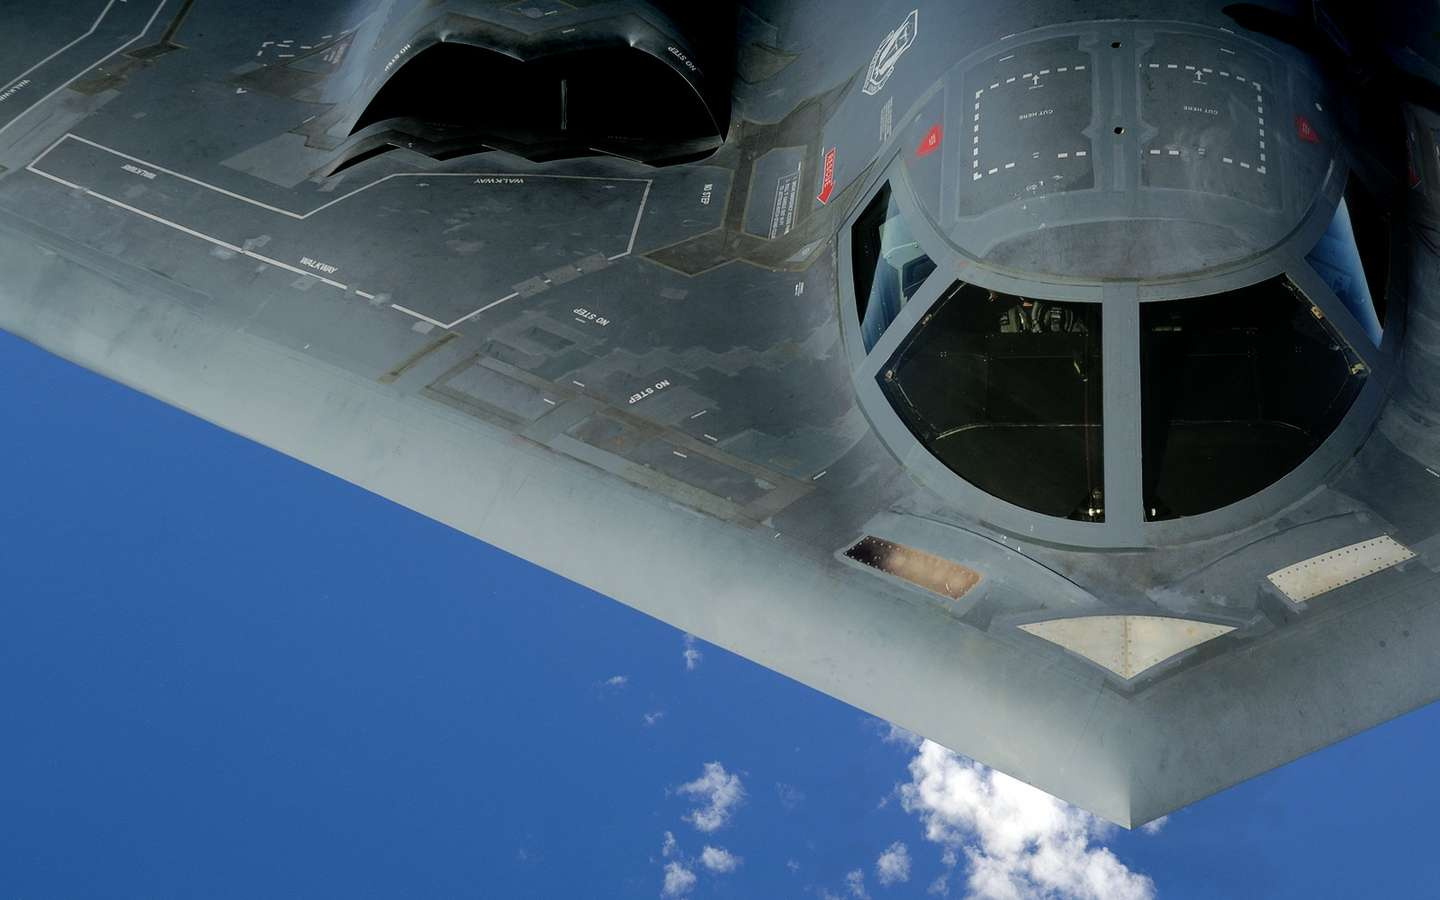 Stealth Bomber Wallpaper Hd Wallpapers 1440x900